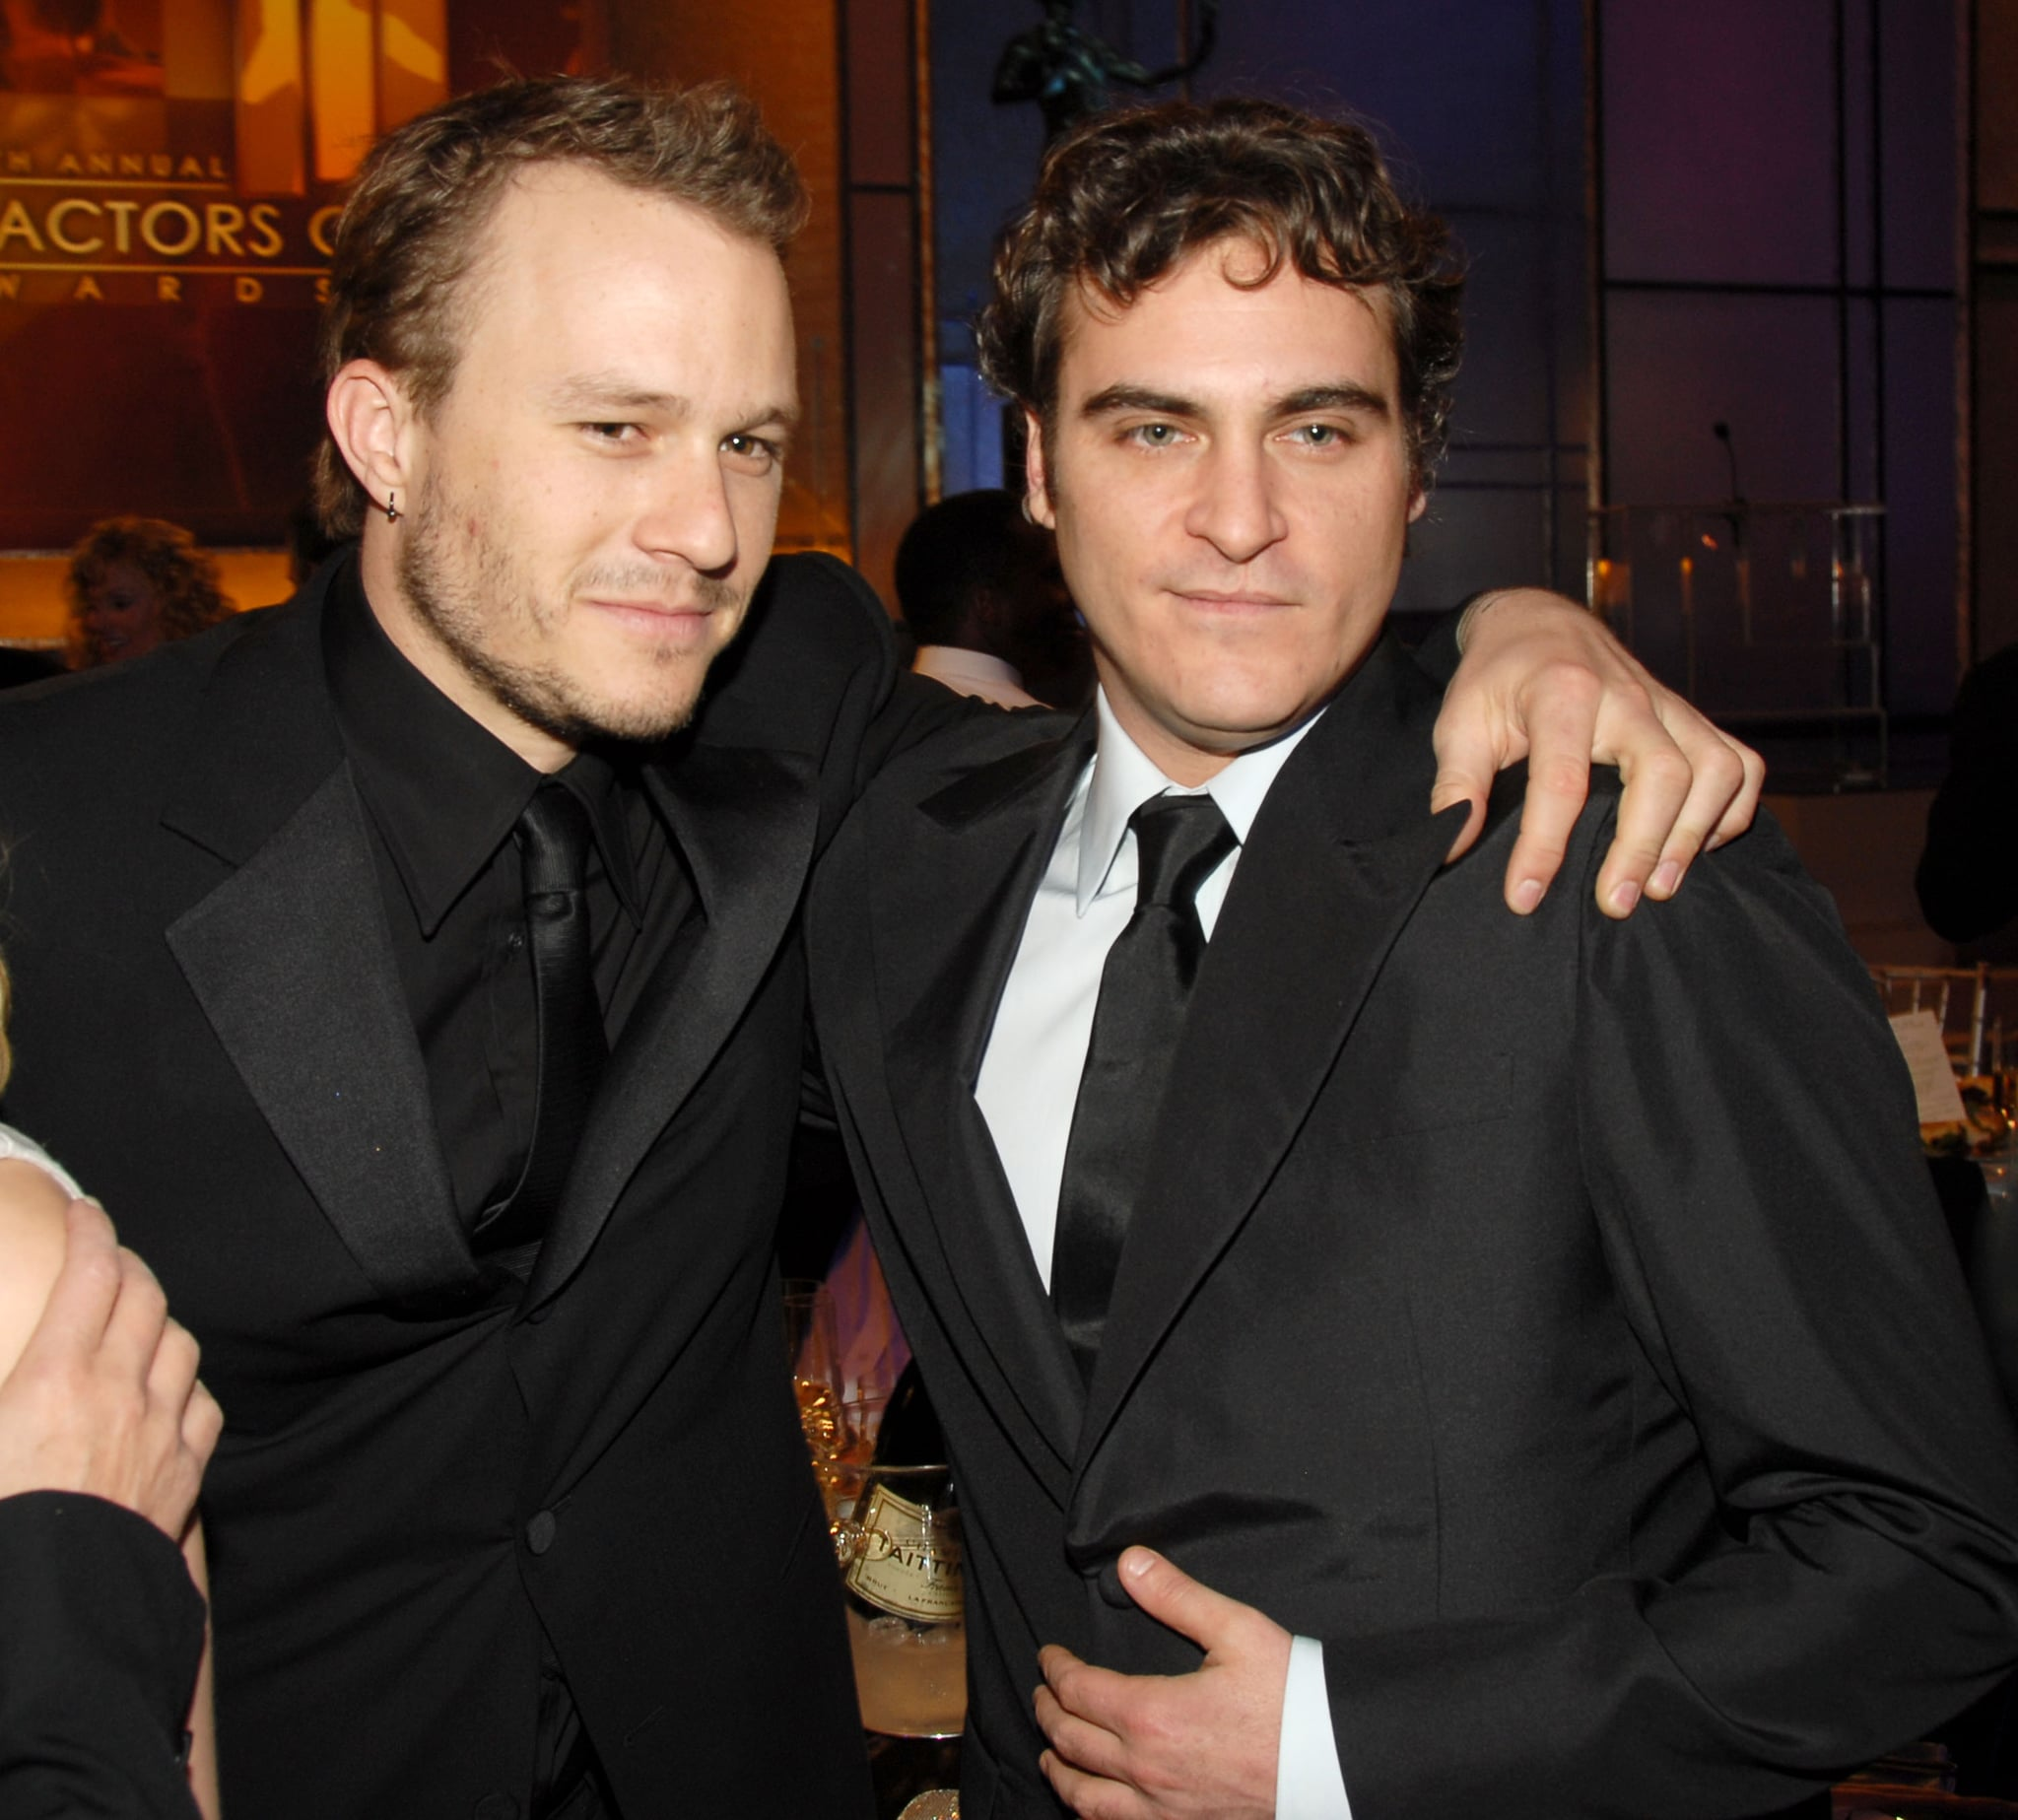 Heath Ledger and Joaquin Phoenix  10612_km0895.JPG (Photo by KMazur/WireImage for Turner)